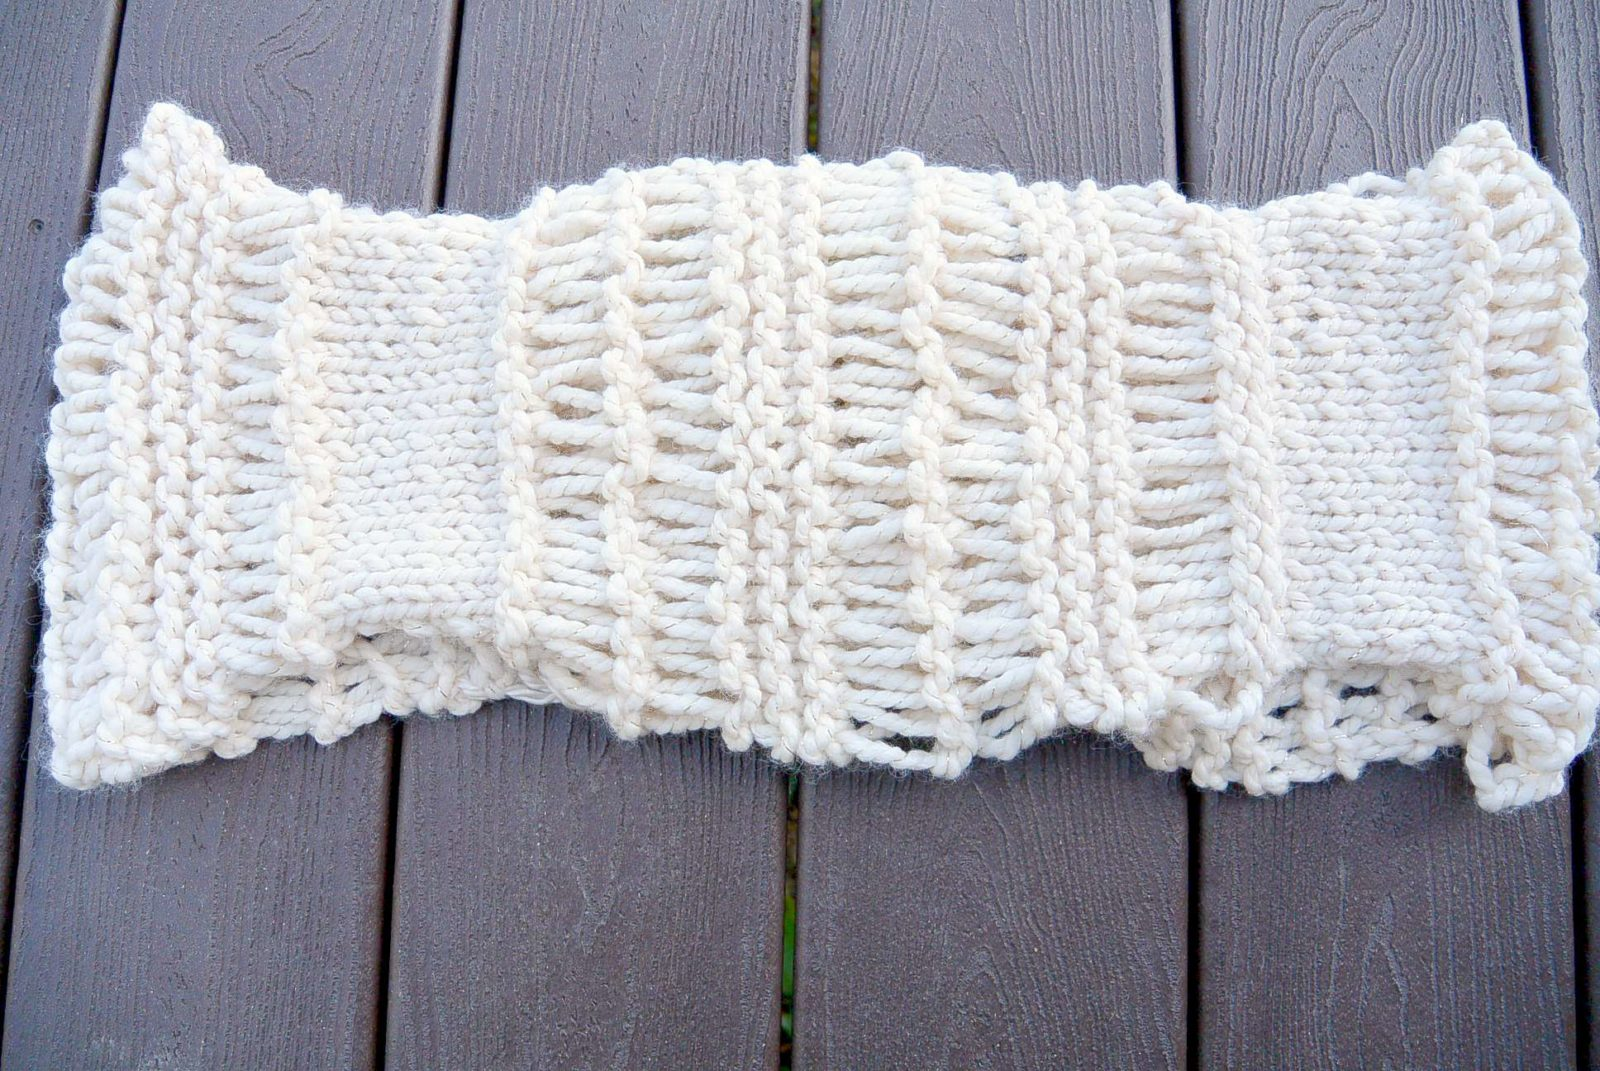 Knitted Stockinette Stitch Scarf Pattern : Cozy Glitz - Chunky Knit Infinity Scarf Pattern   Mama In A Stitch